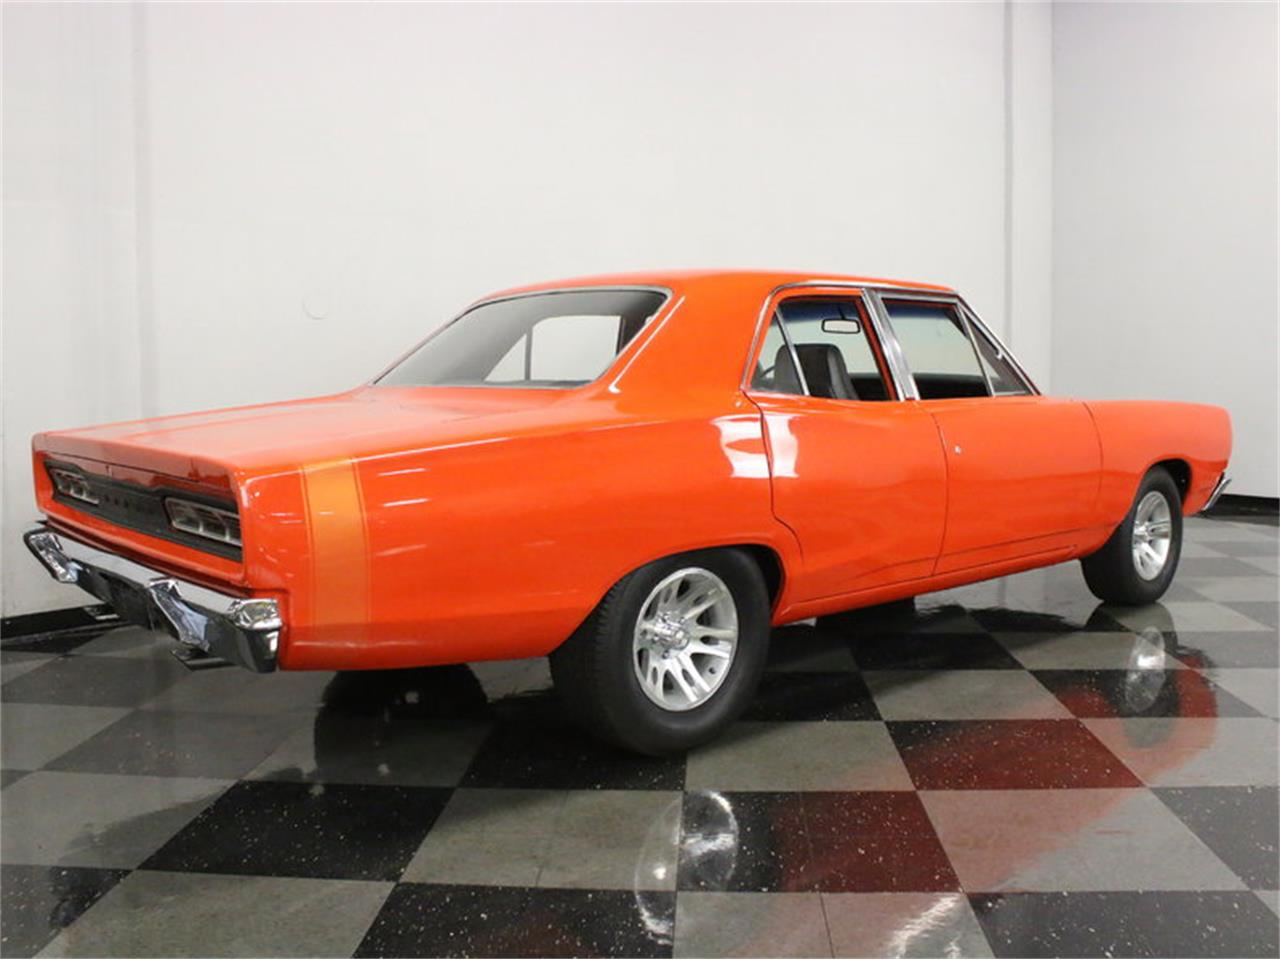 Large Picture of '69 Dodge Coronet located in Texas Offered by Streetside Classics - Dallas / Fort Worth - L5NW